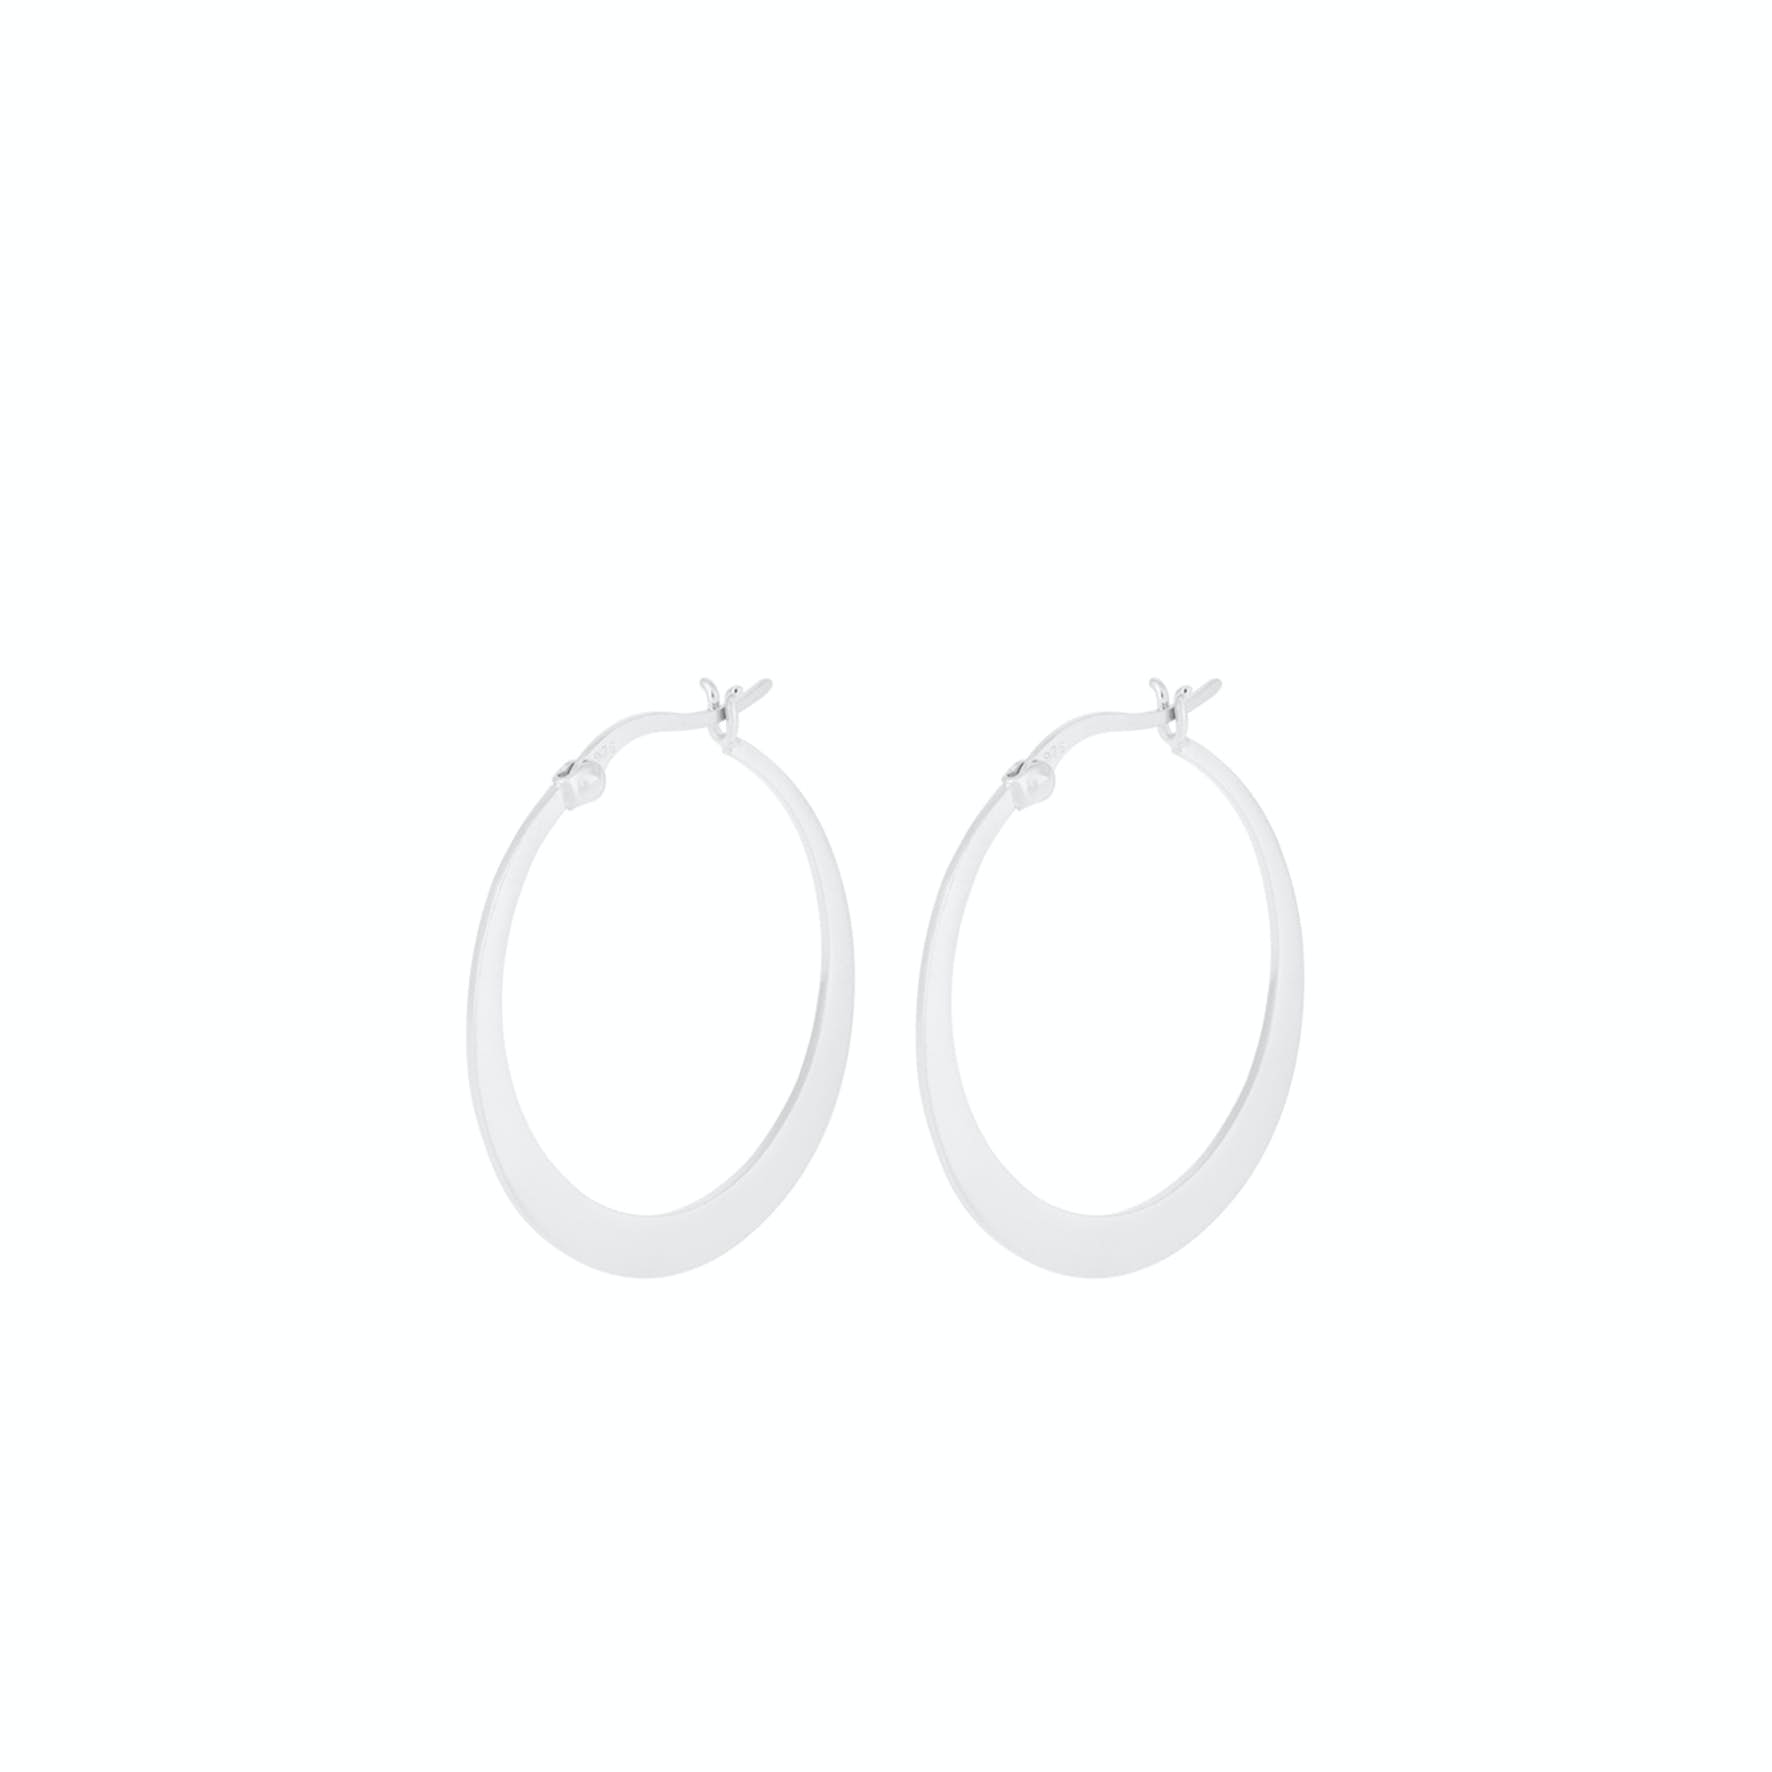 Escape Hoops Small von Pernille Corydon in Silber Sterling 925